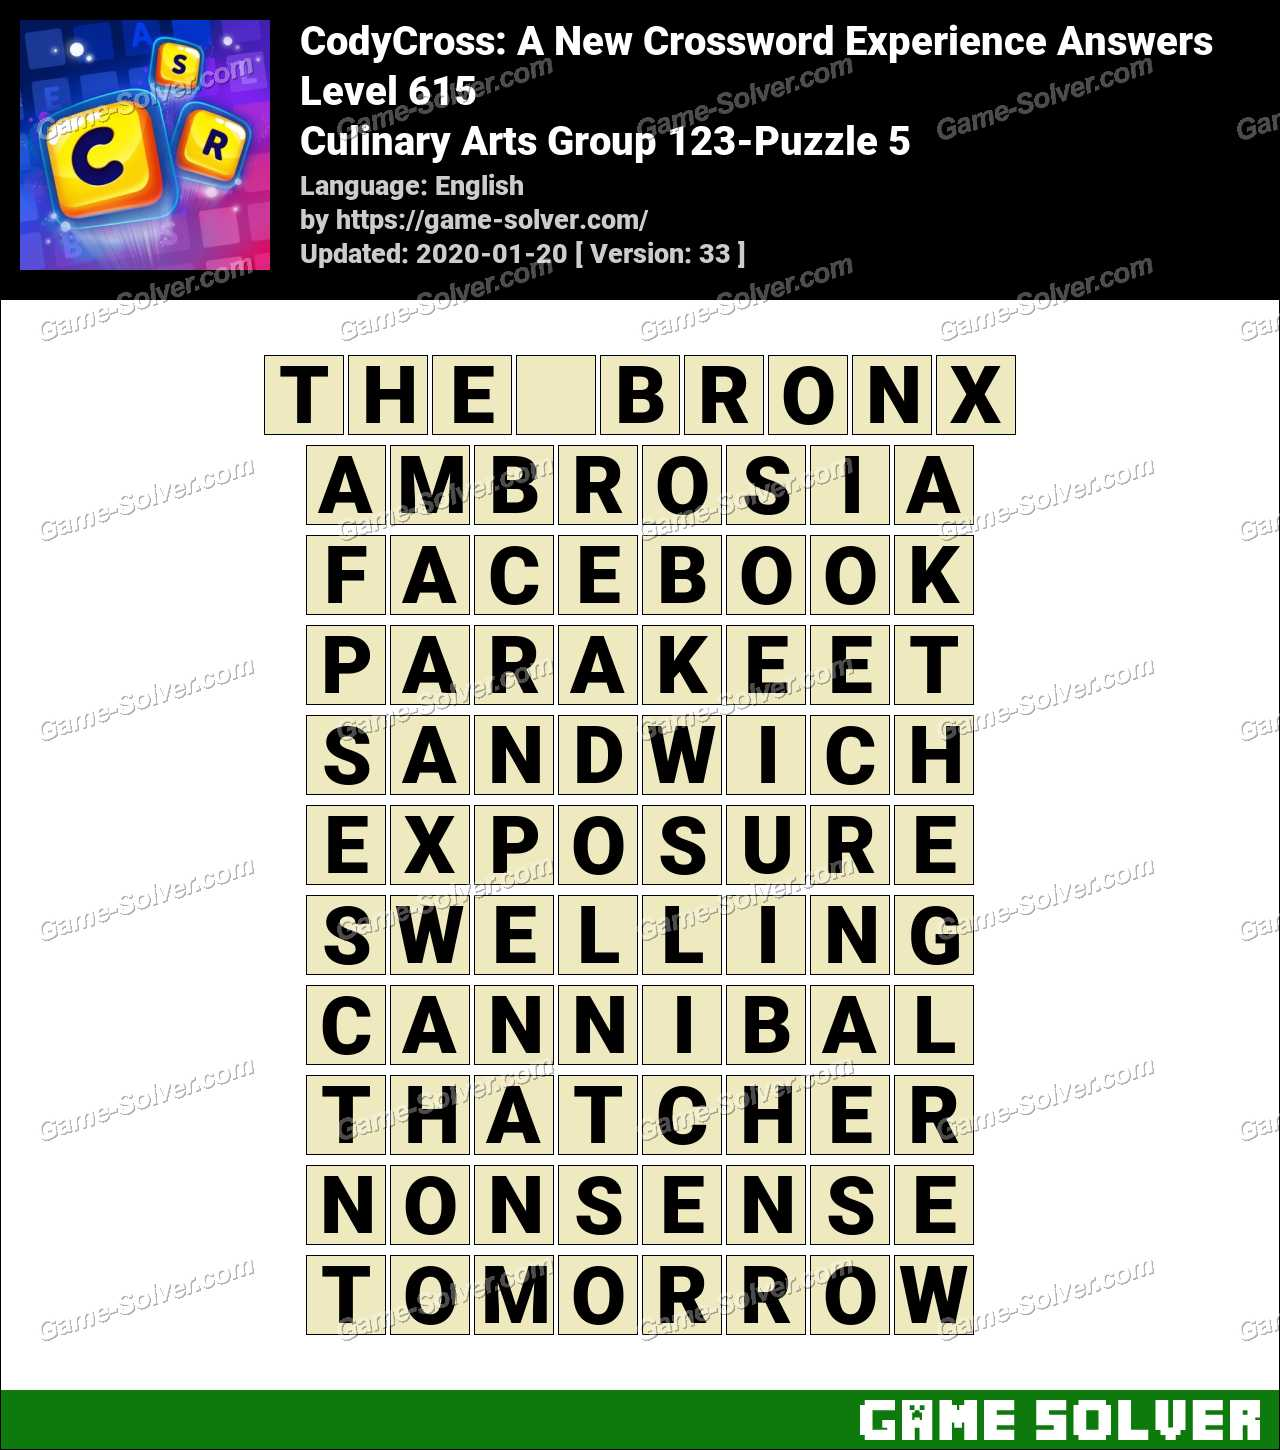 CodyCross Culinary Arts Group 123-Puzzle 5 Answers